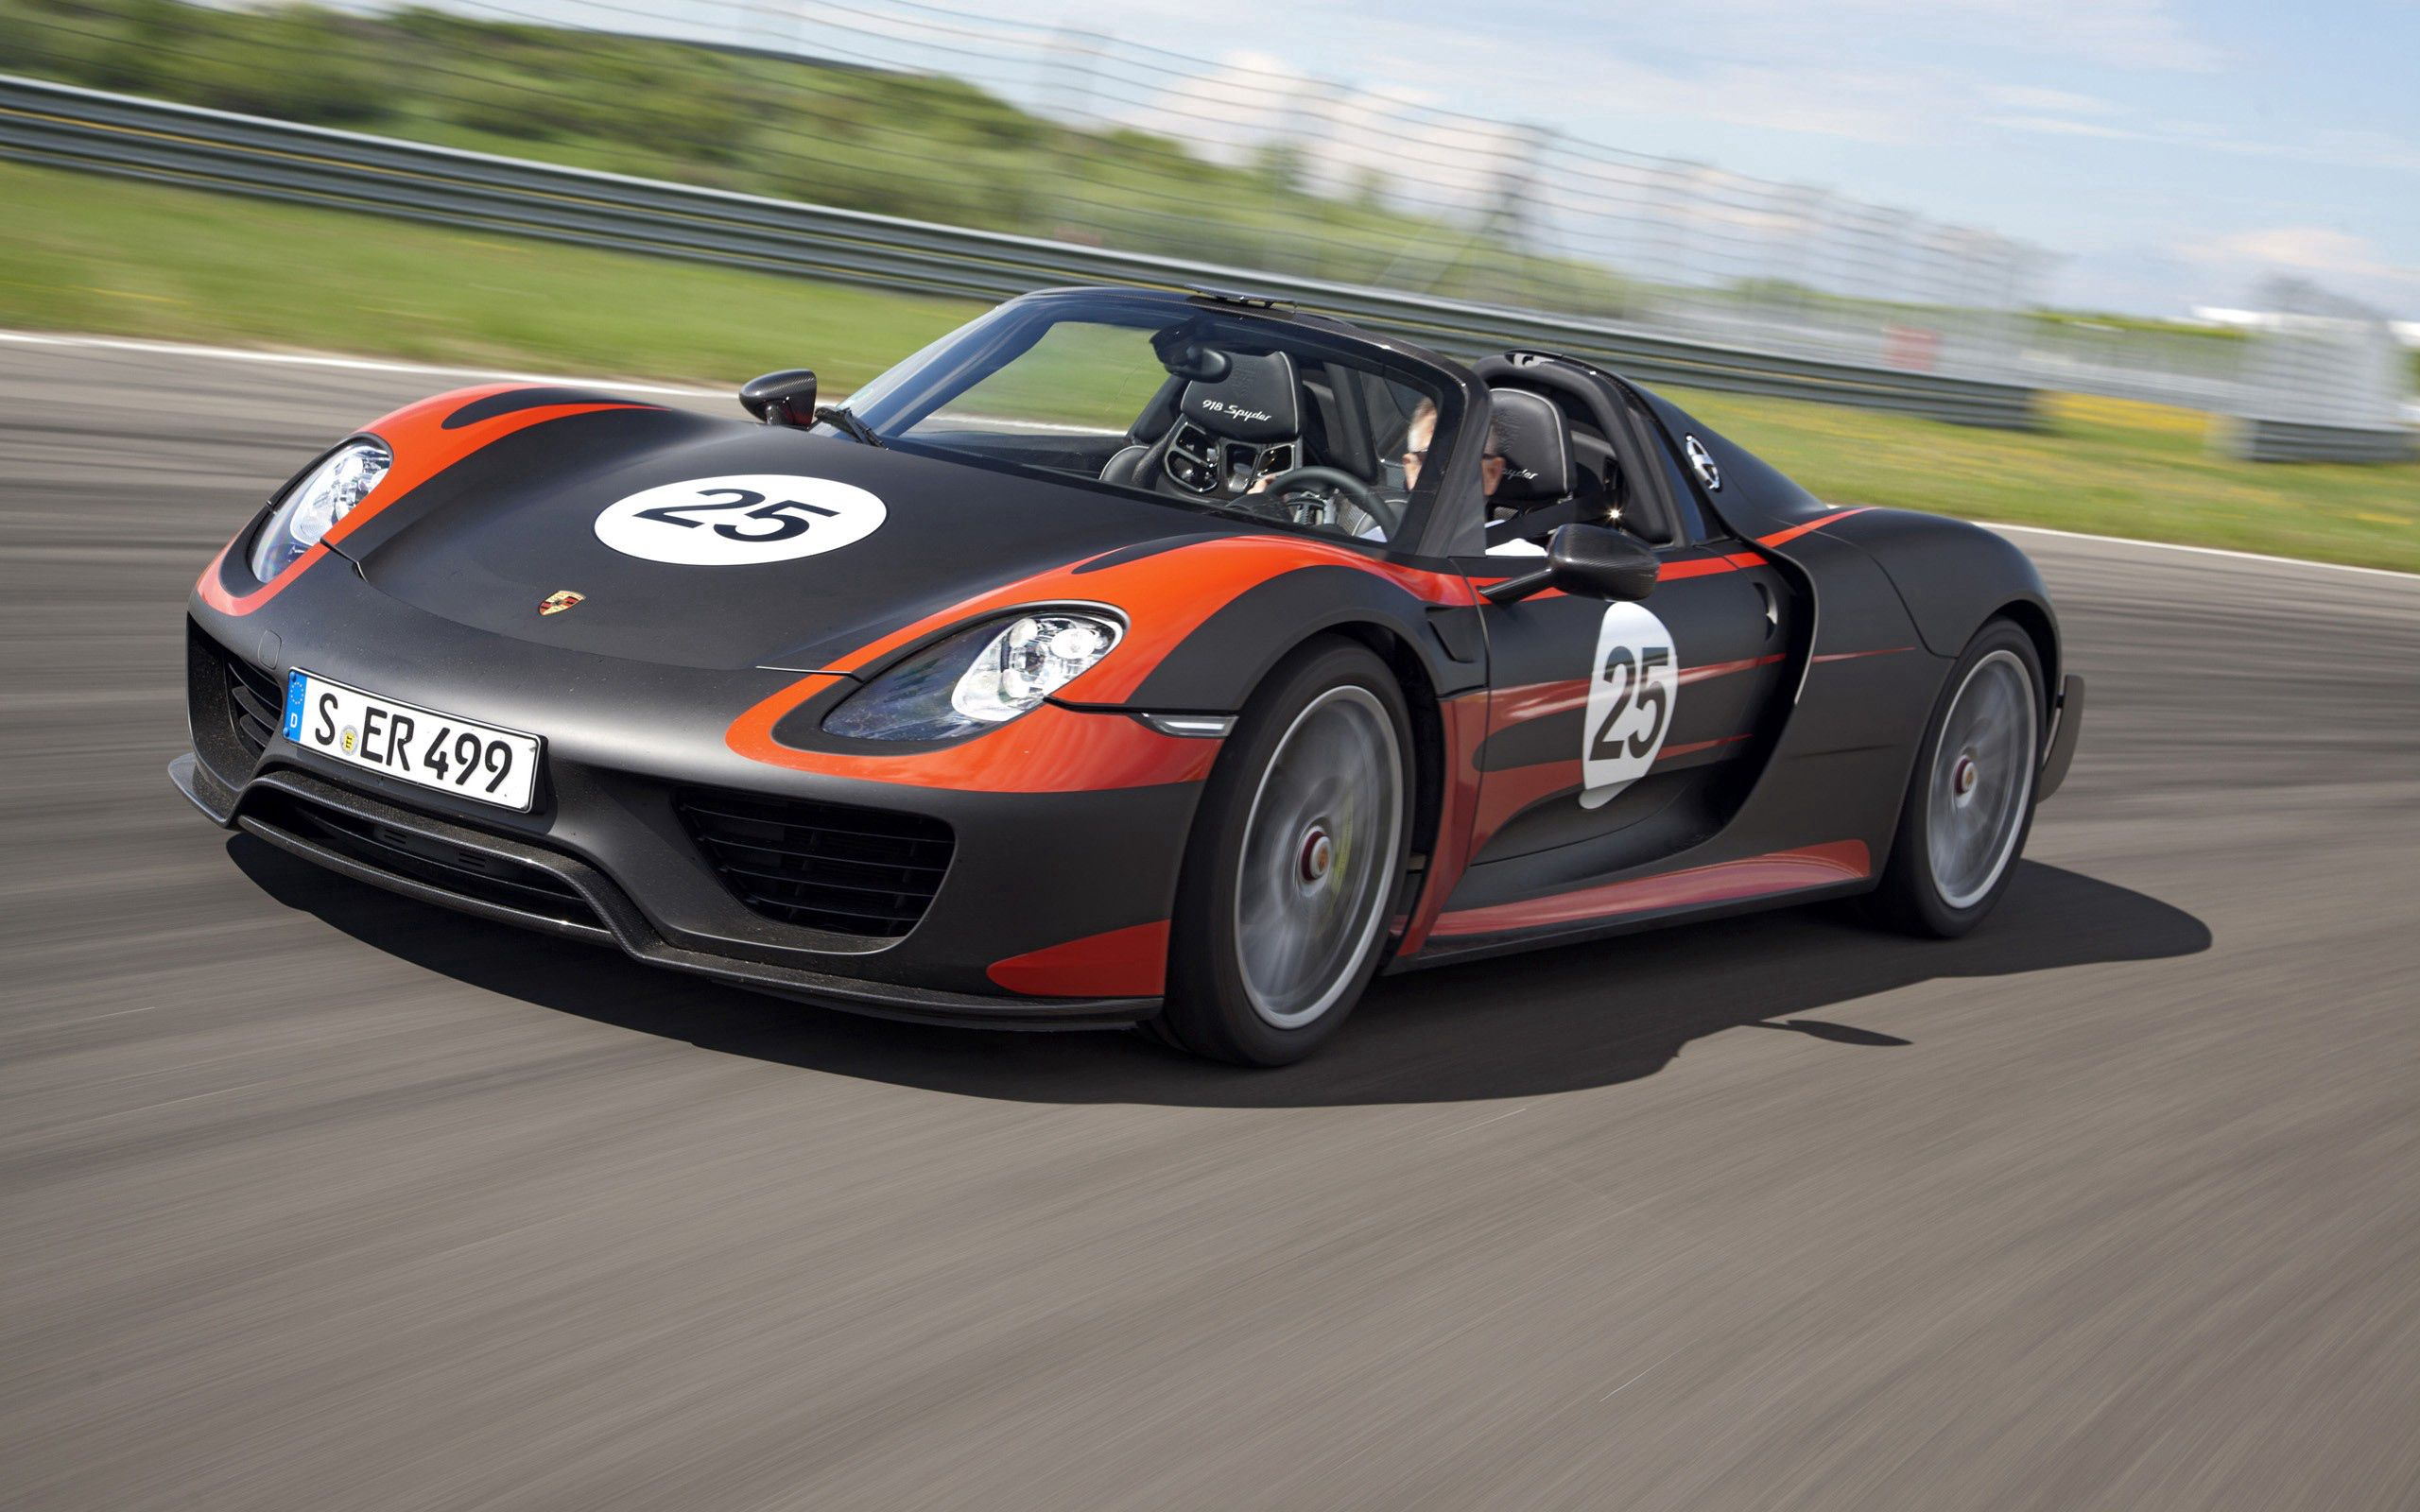 90292 download wallpaper Cars, Porsche 918, Porsche, Auto, Speed, Sports Car, Sports screensavers and pictures for free